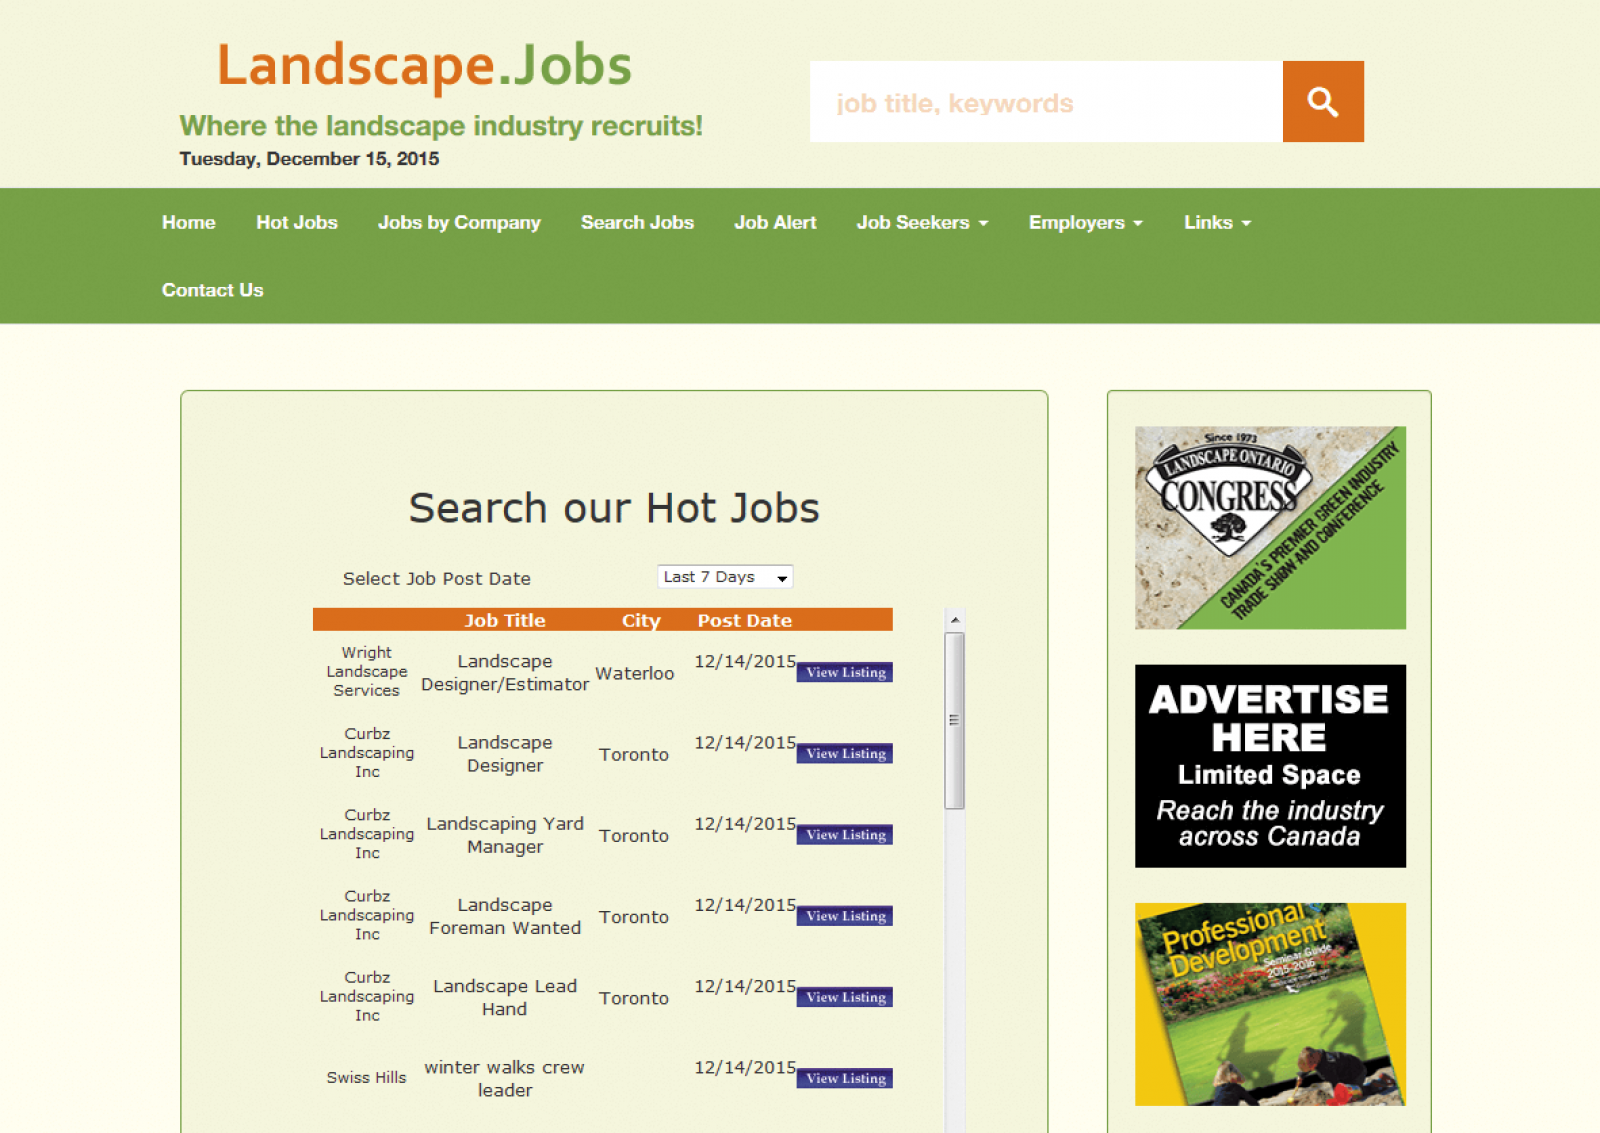 Free jobs resource for landscape industry